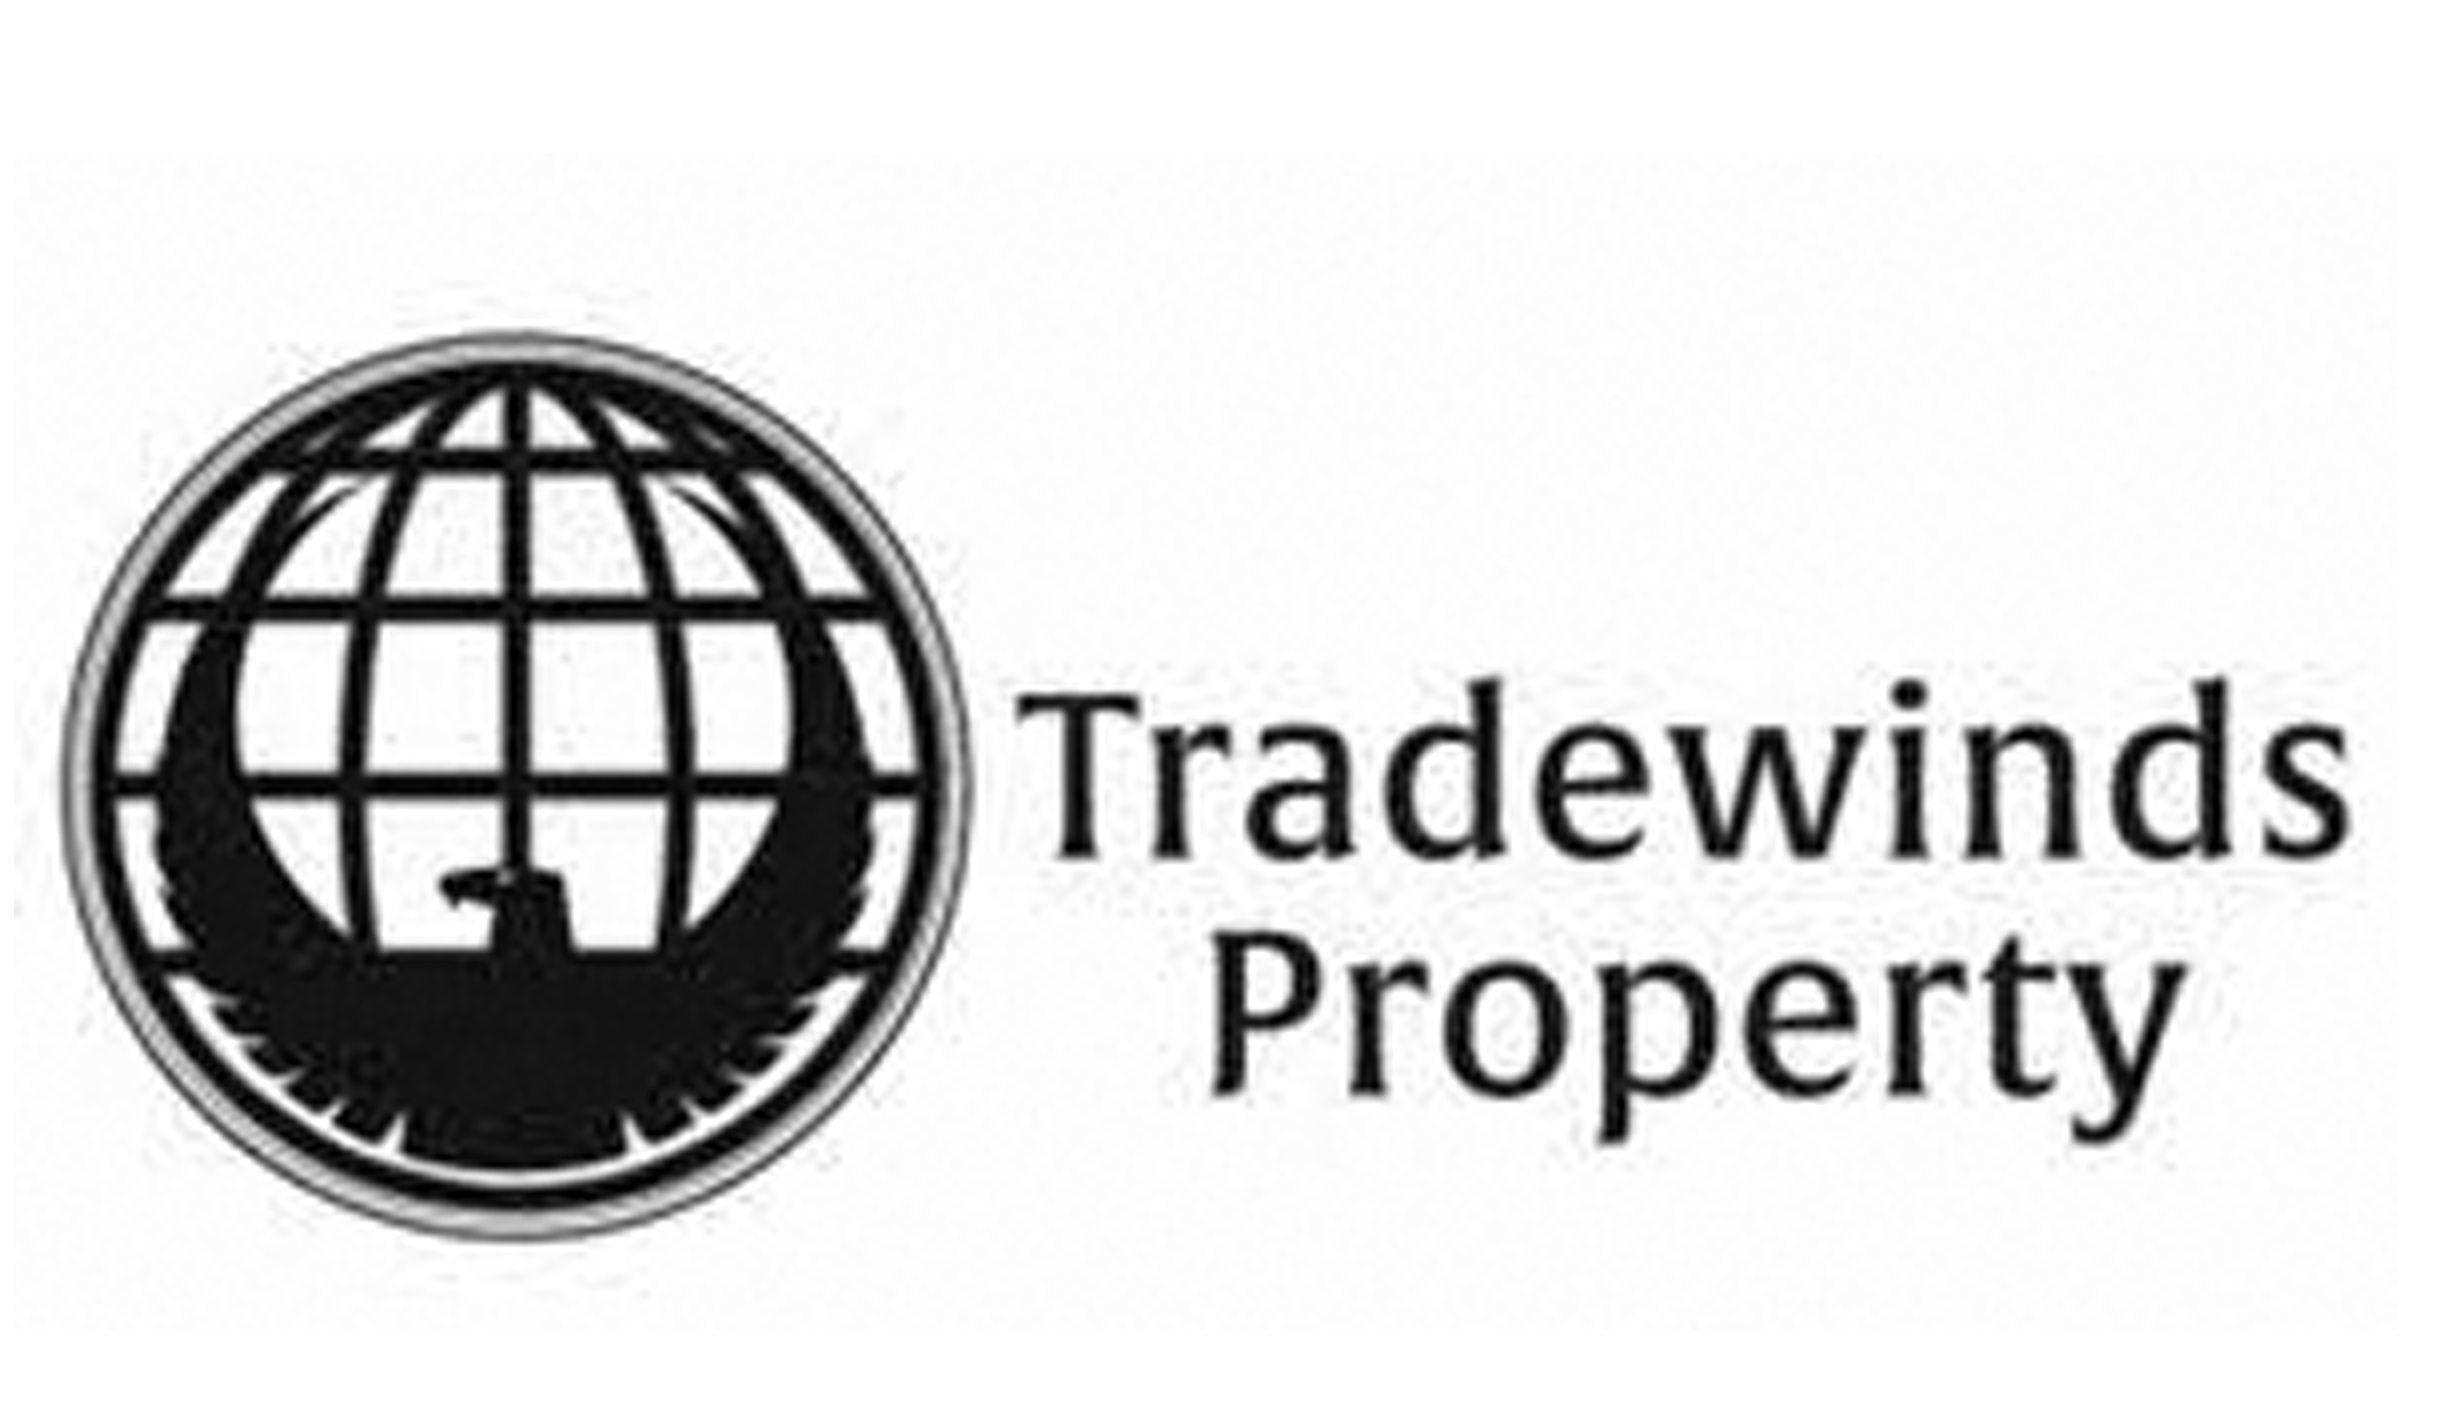 Tradewinds Property